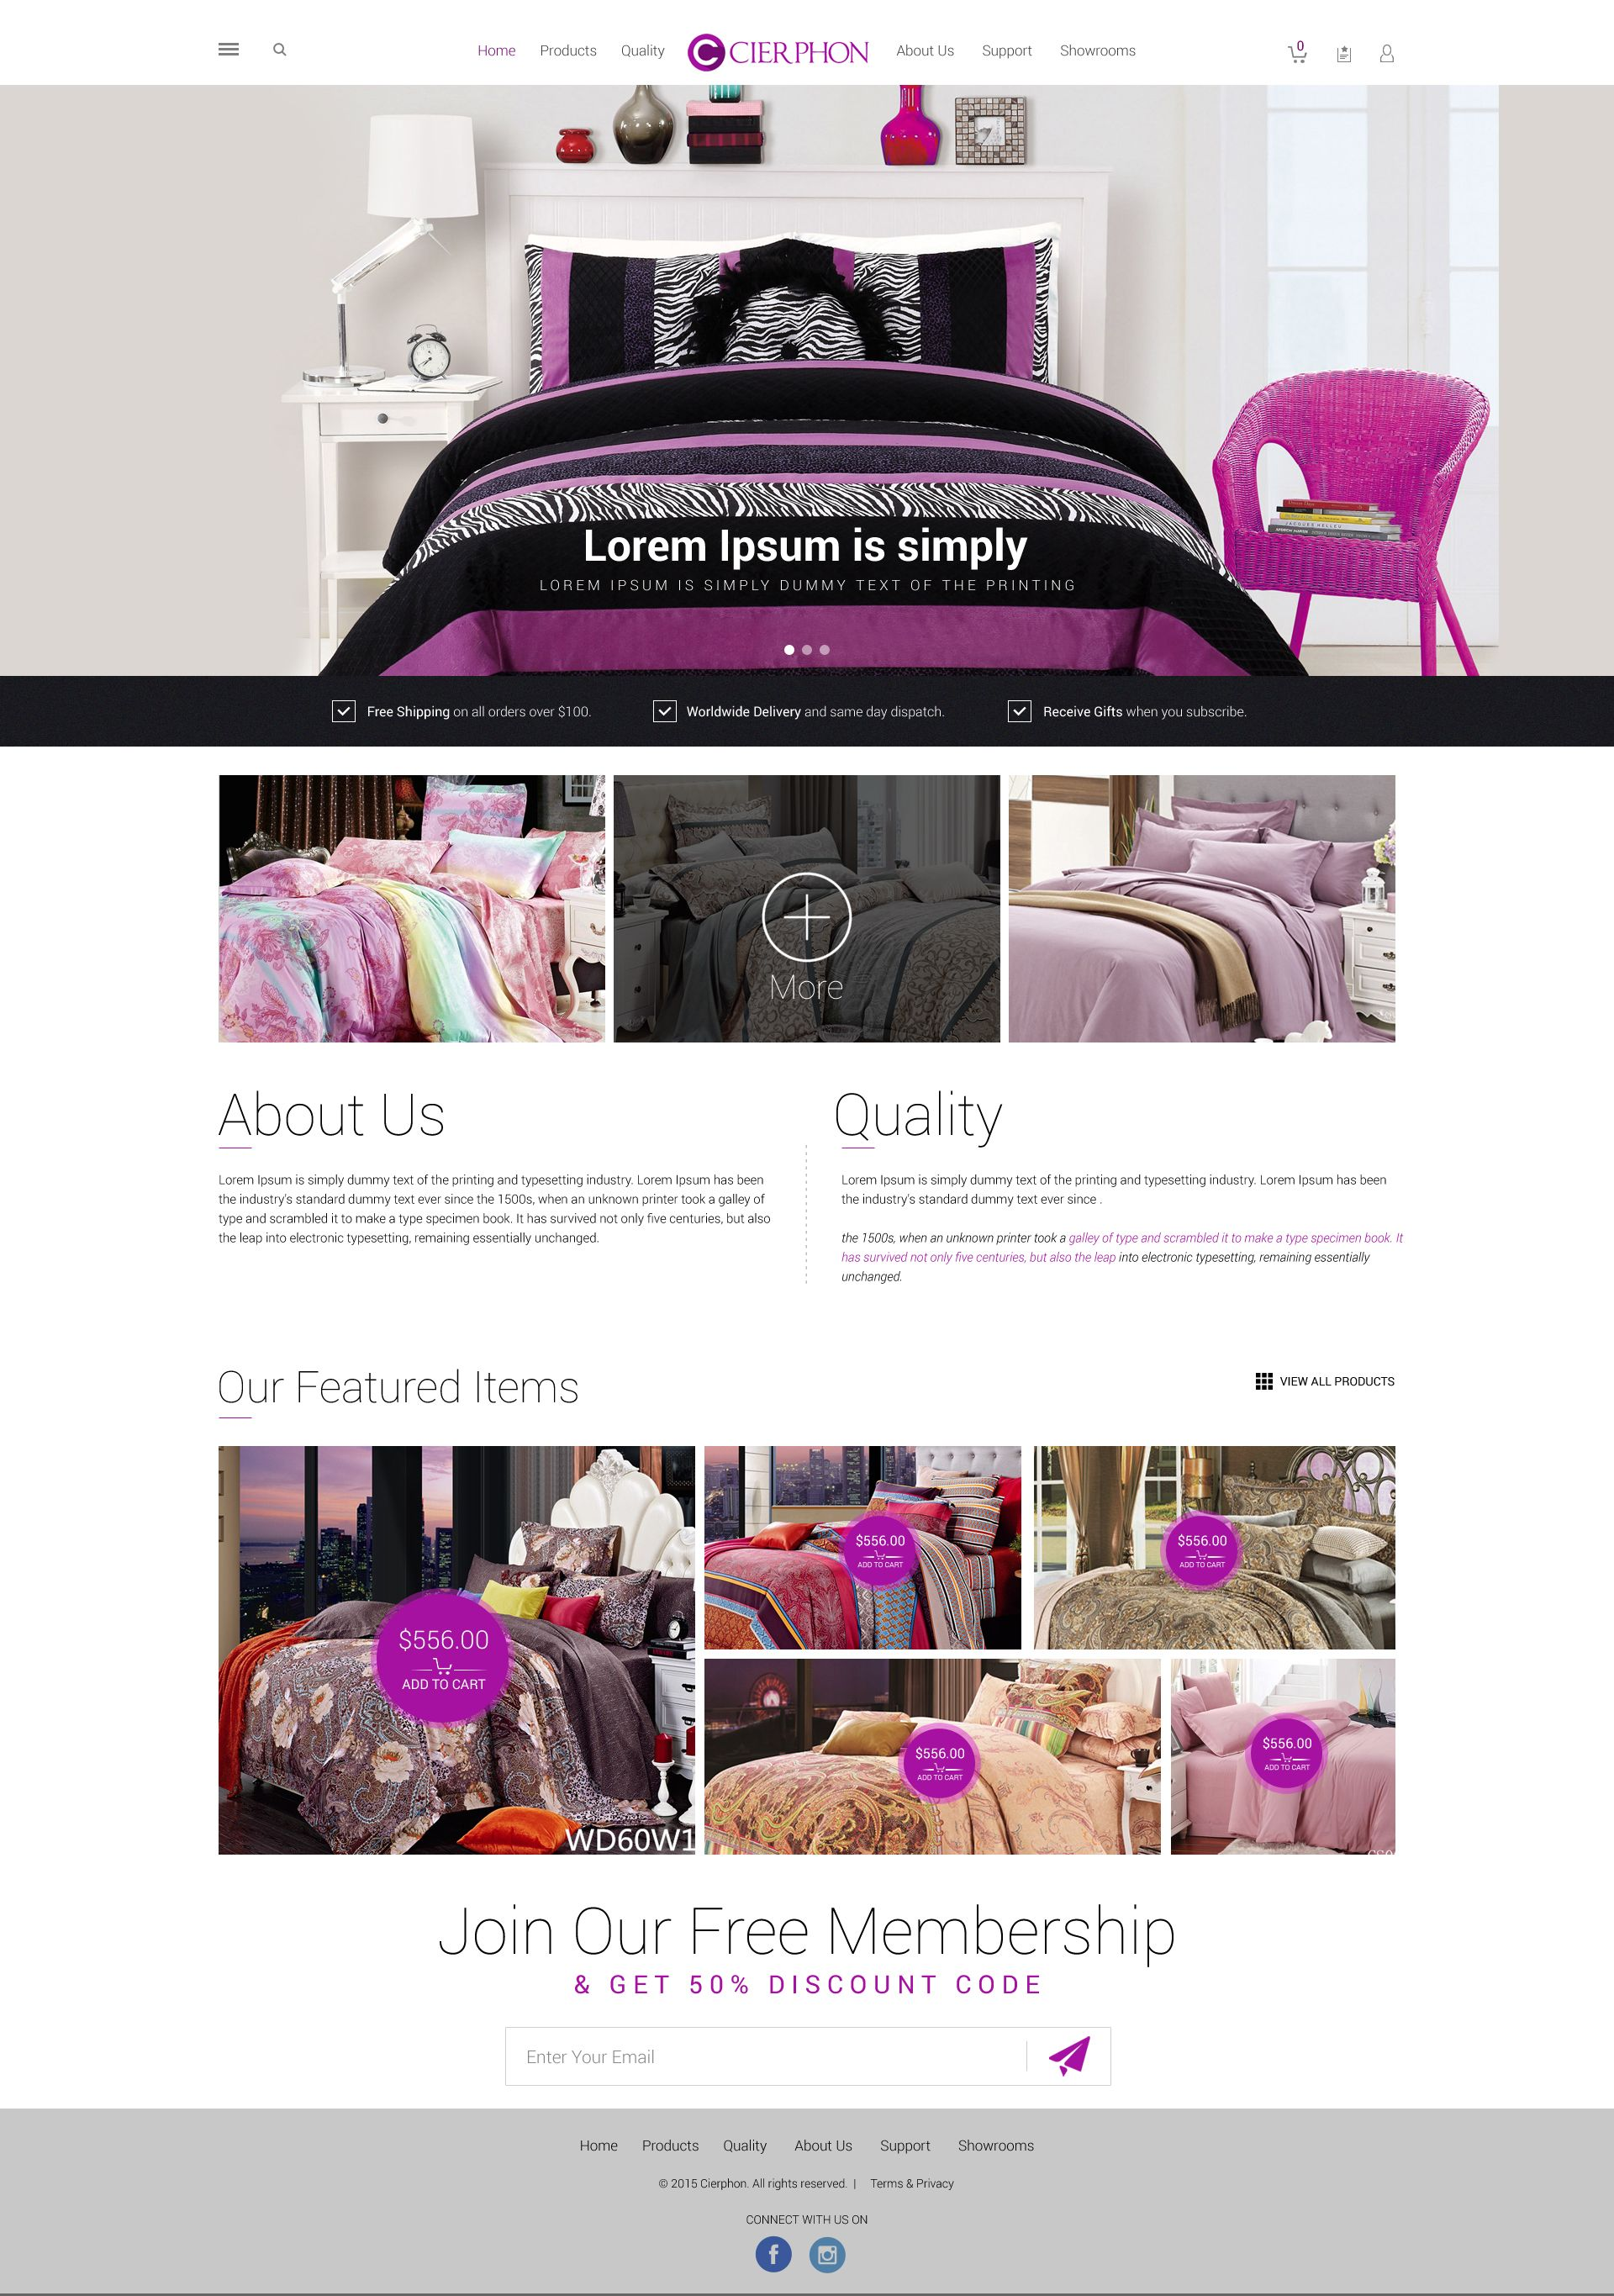 BEDDING ECOMMERCE SITE TEMPLATE DESIGN DINA NATH SHAW TEMPLATE - Ecommerce site templates